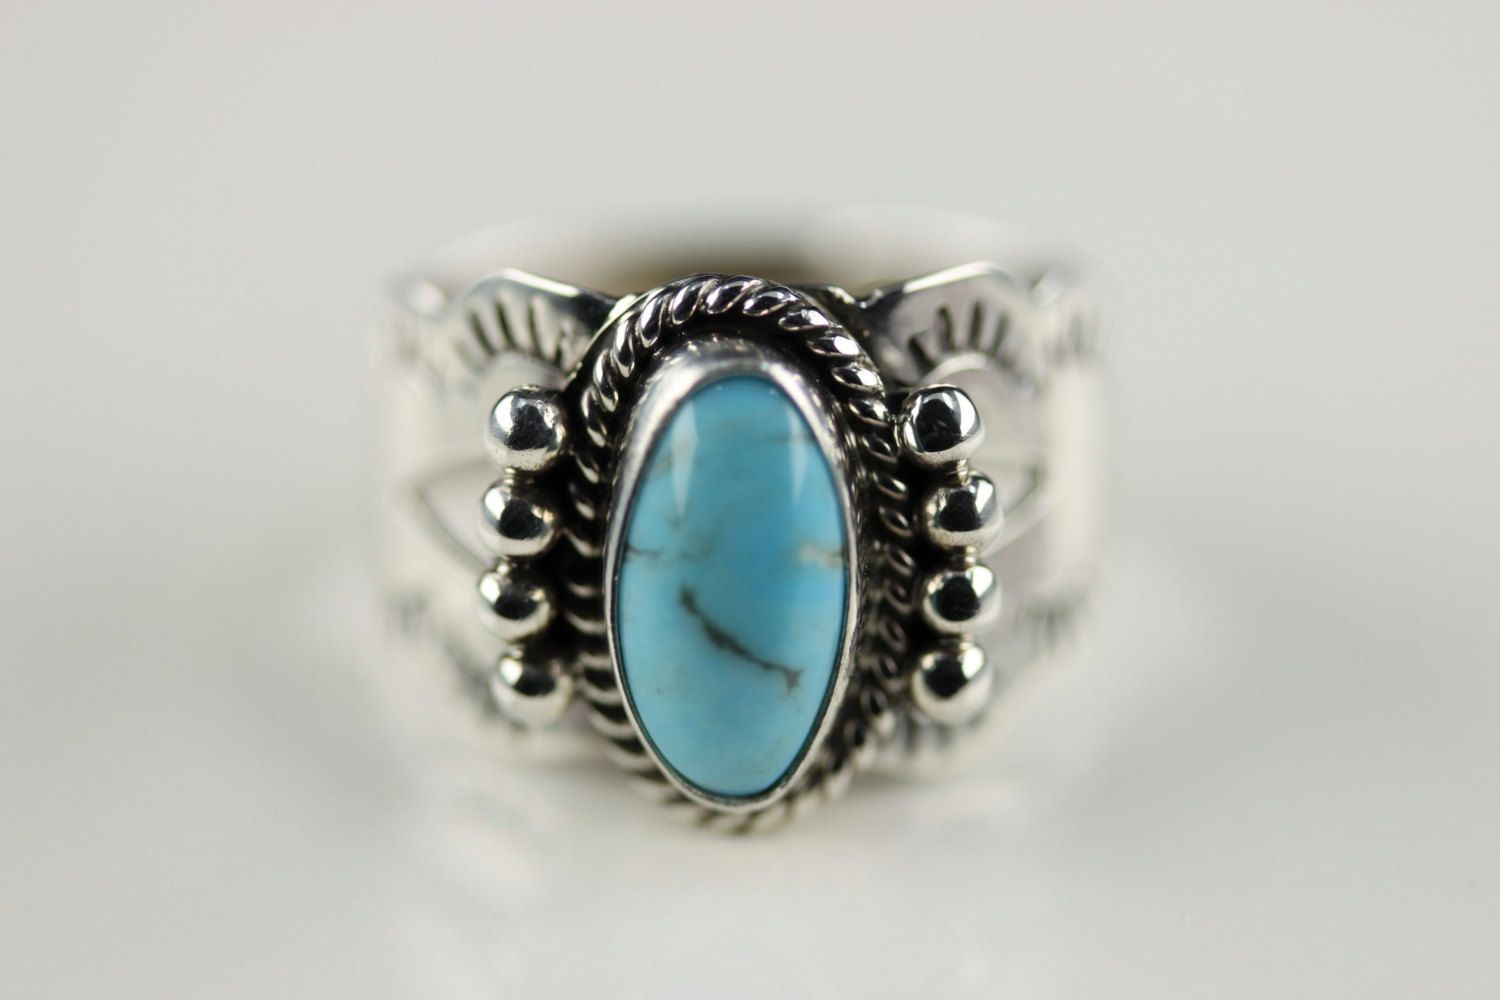 Native American Navajo Sterling Silver Turquoise Ring Size 8 By Jan Mariano by LoudCrowTradingCo on Etsy